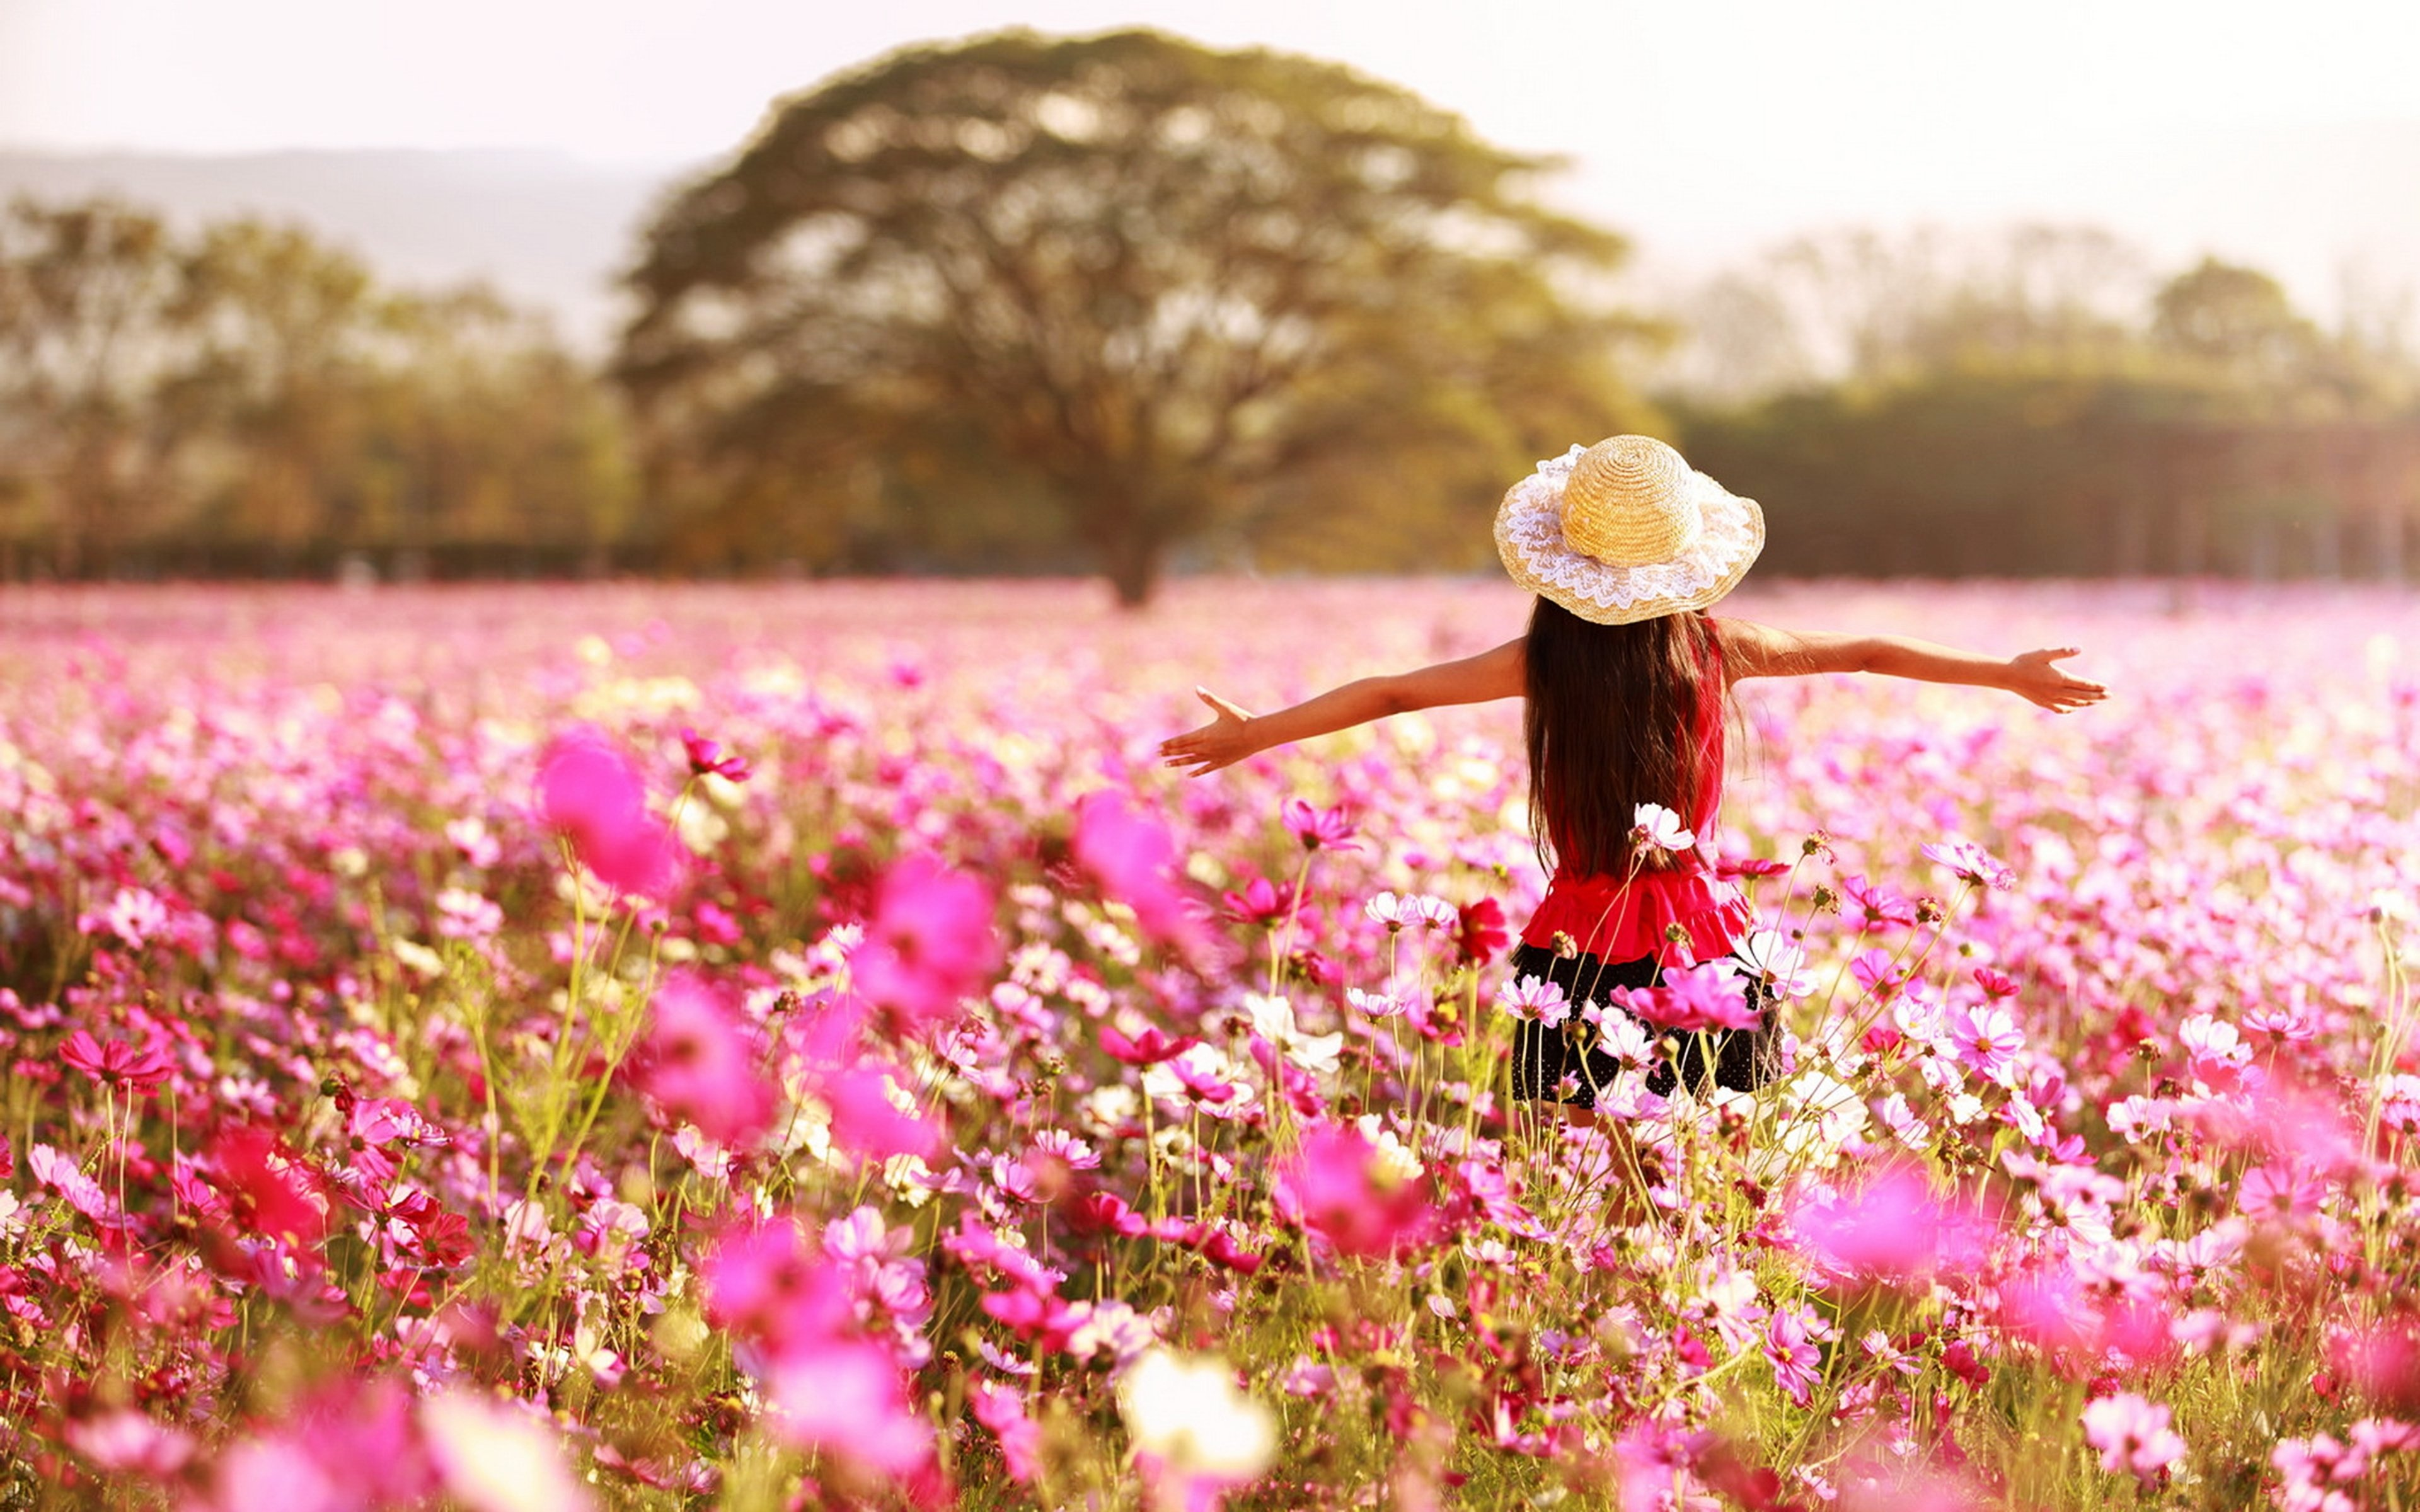 kids children childhood girls joy happy spring nature landscapes earth flowers pink rose trees countryside fun life wallpaper 3840x2400 650058 - Spring Pictures For Children